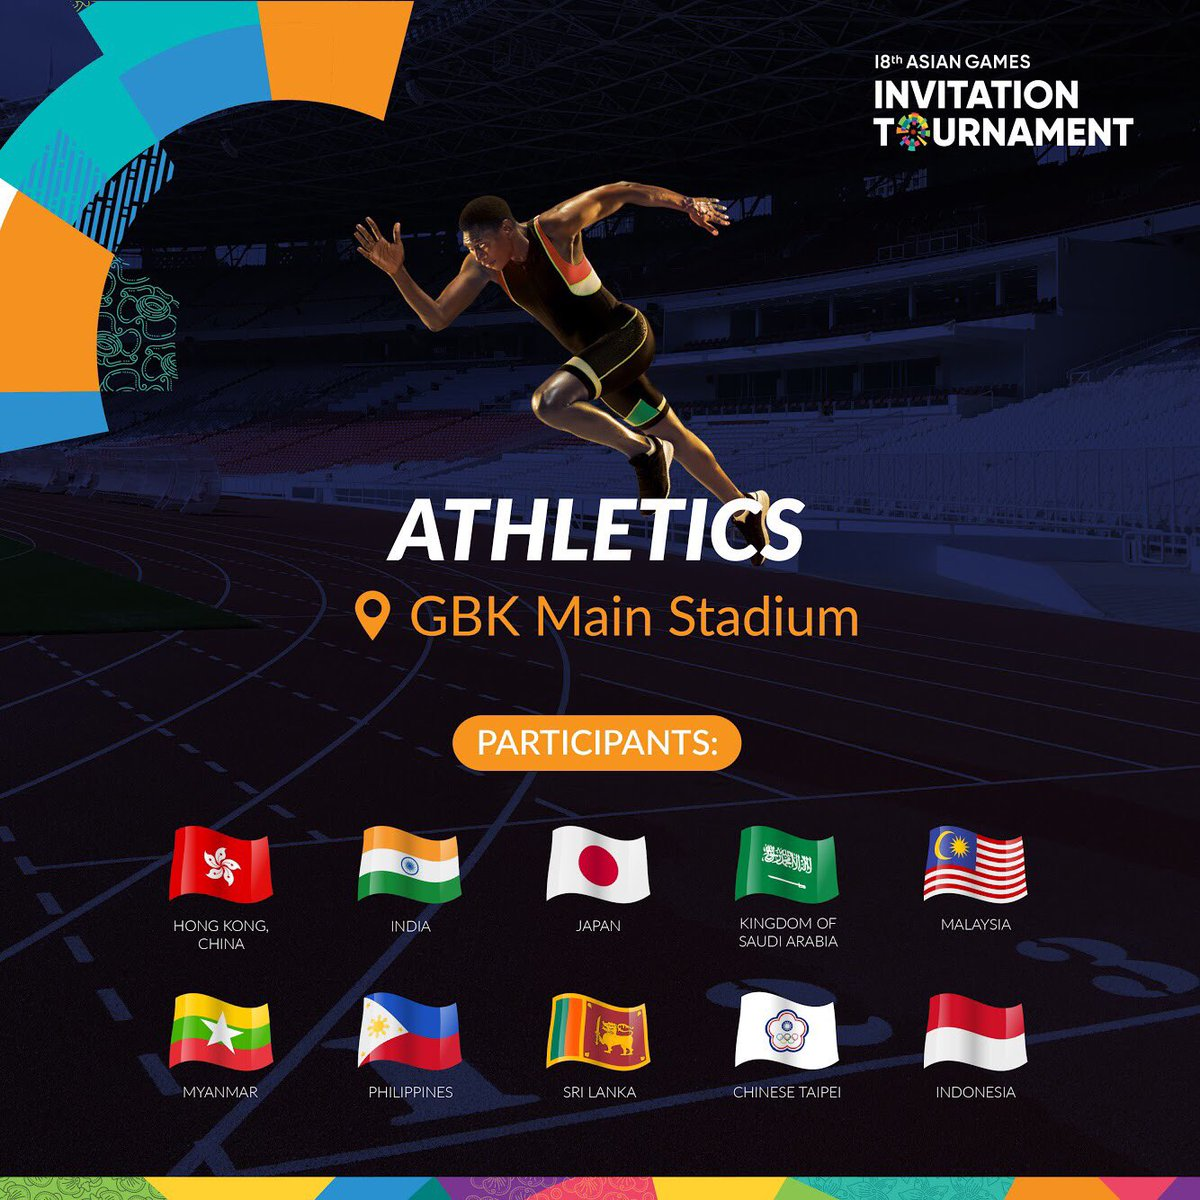 Asian games 2018 on twitter lets sprint to gbk main stadium and asian games 2018 on twitter lets sprint to gbk main stadium and watch the asiangames2018 invitation tournament athletics get your tickets on the spot stopboris Gallery